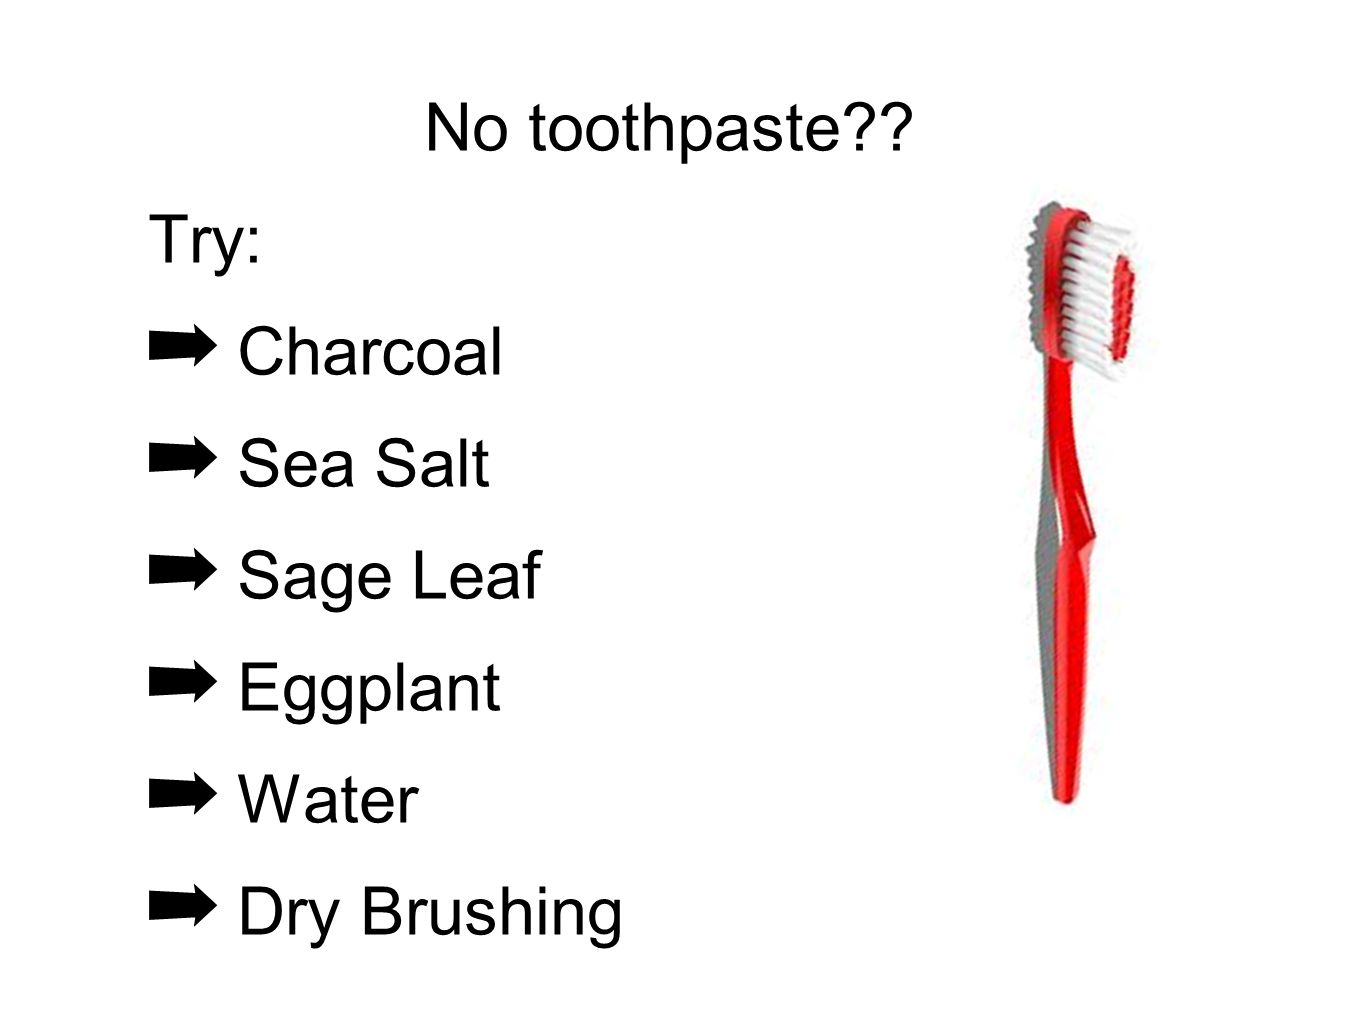 No toothpaste?? Try: Charcoal Sea Salt Sage Leaf Eggplant Water Dry Brushing